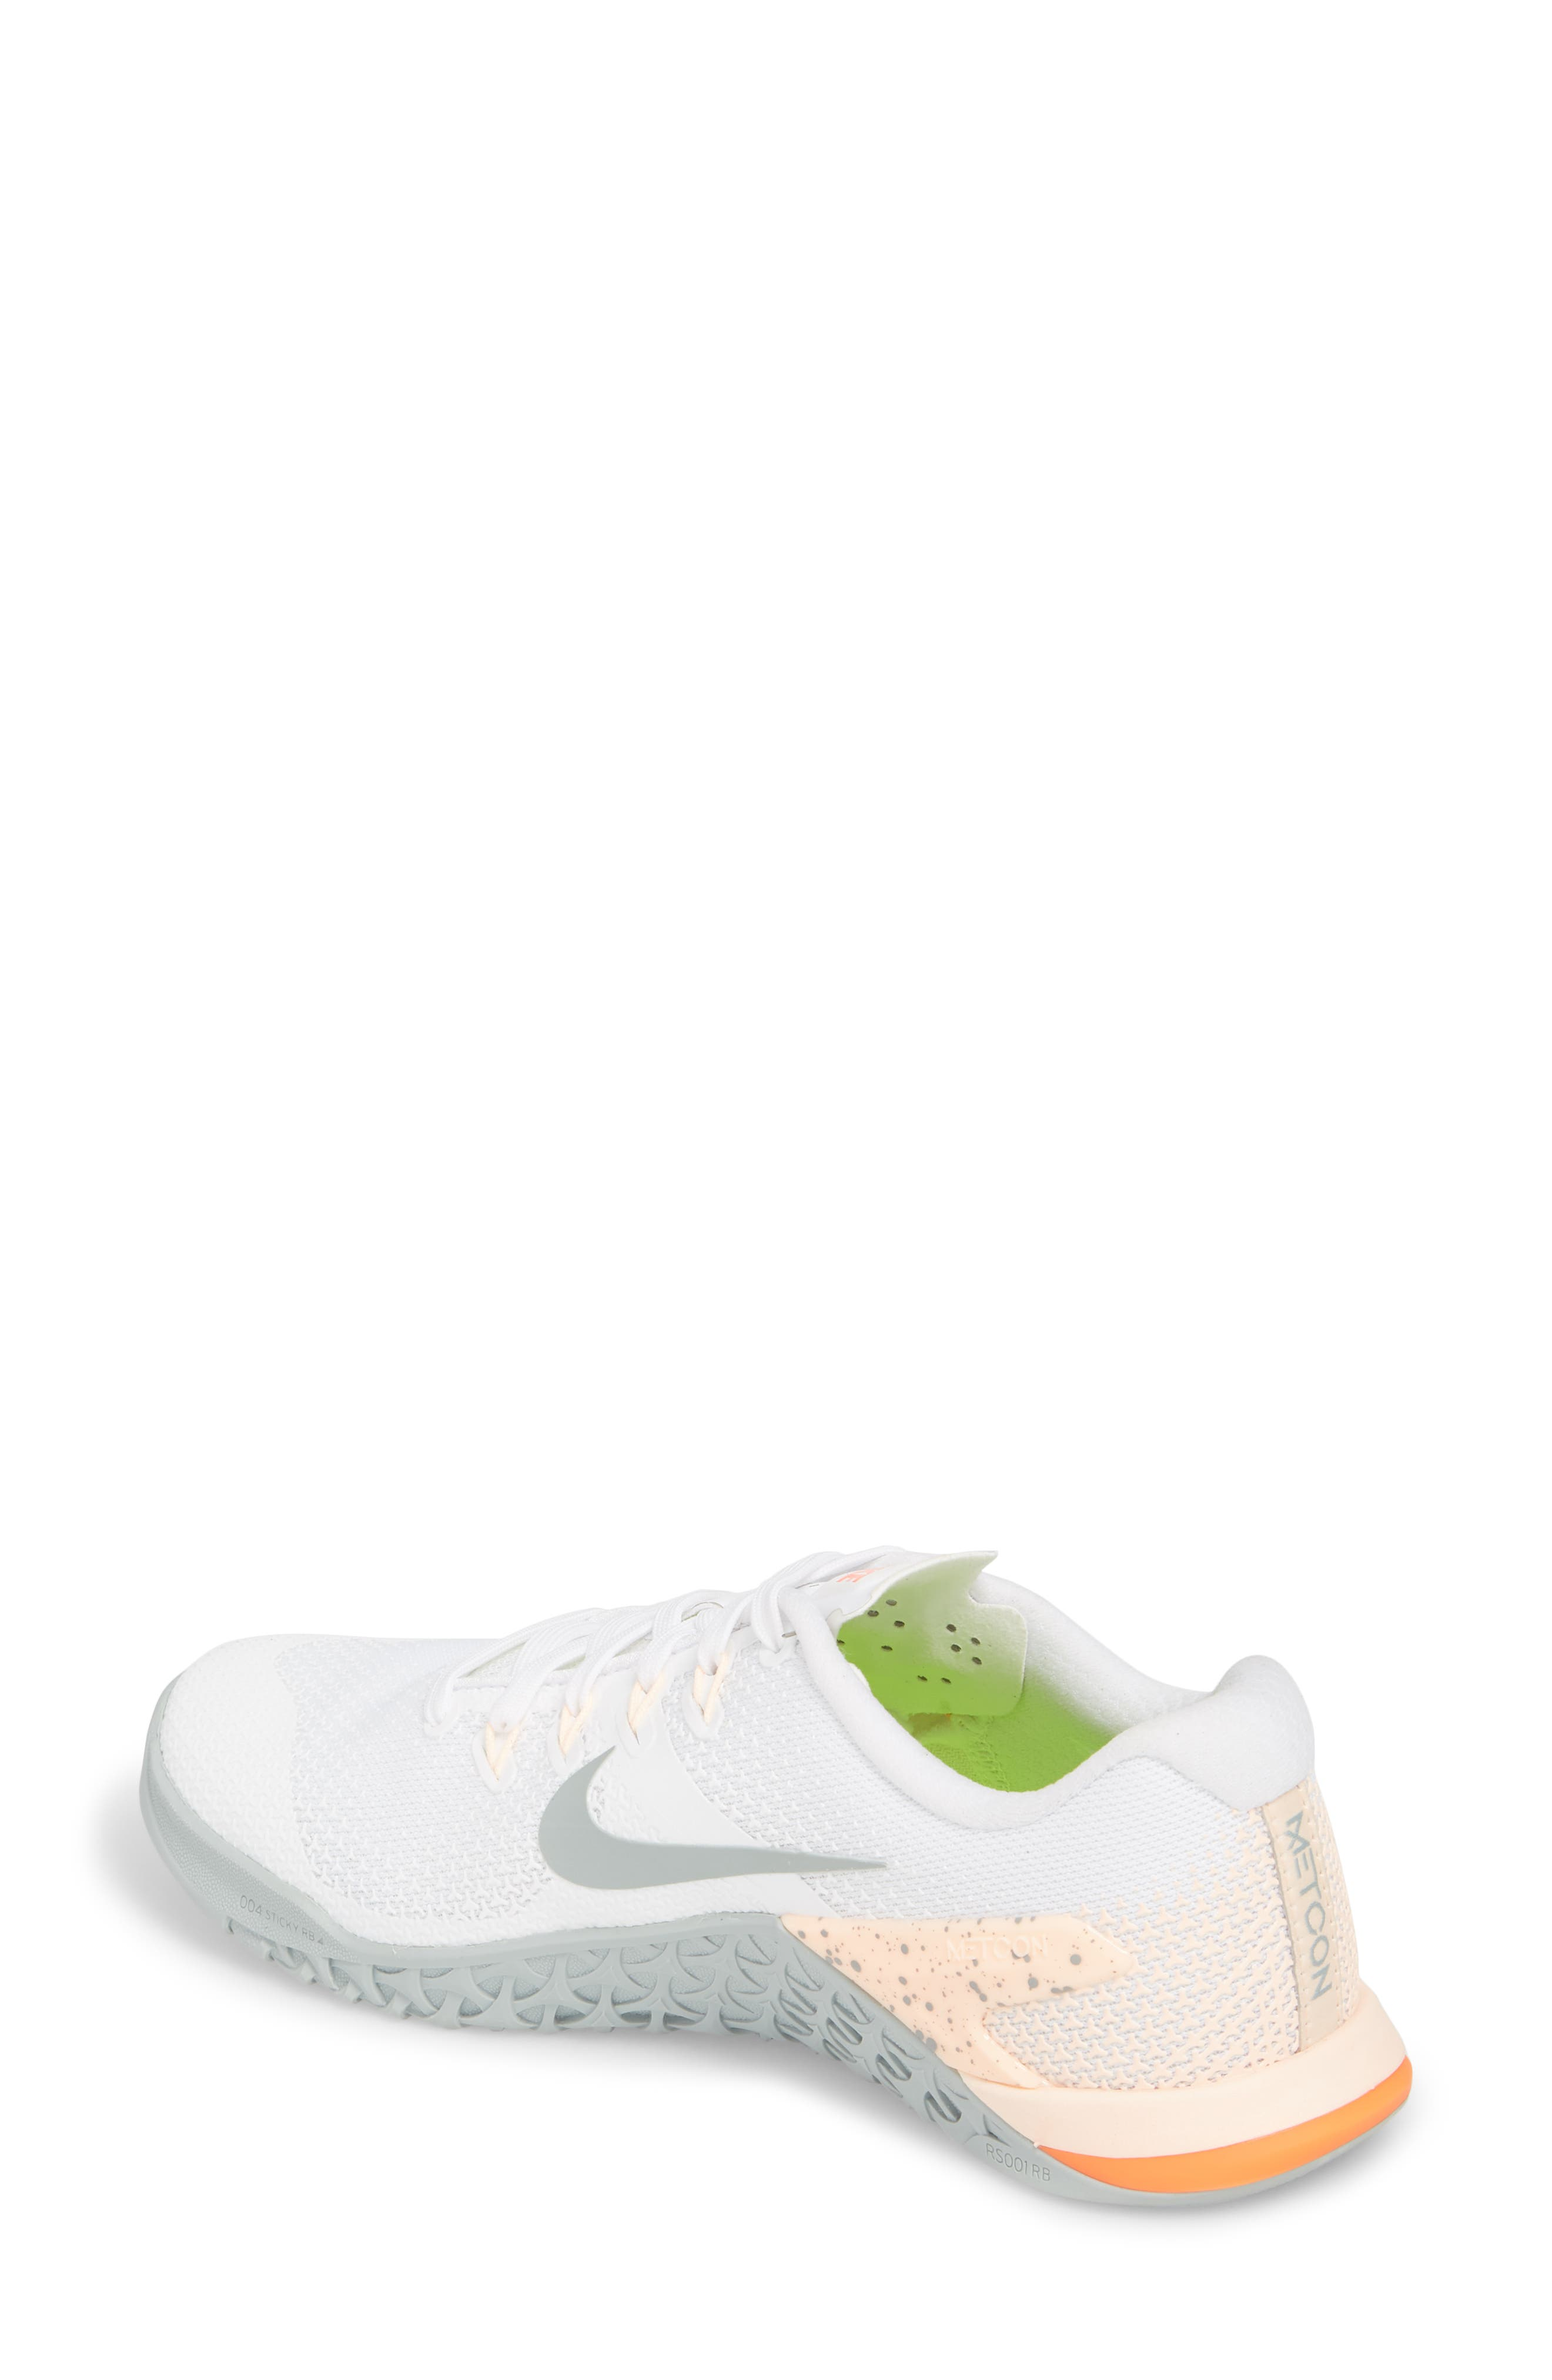 Metcon 4 Training Shoe,                             Alternate thumbnail 2, color,                             White/ Light Pumice